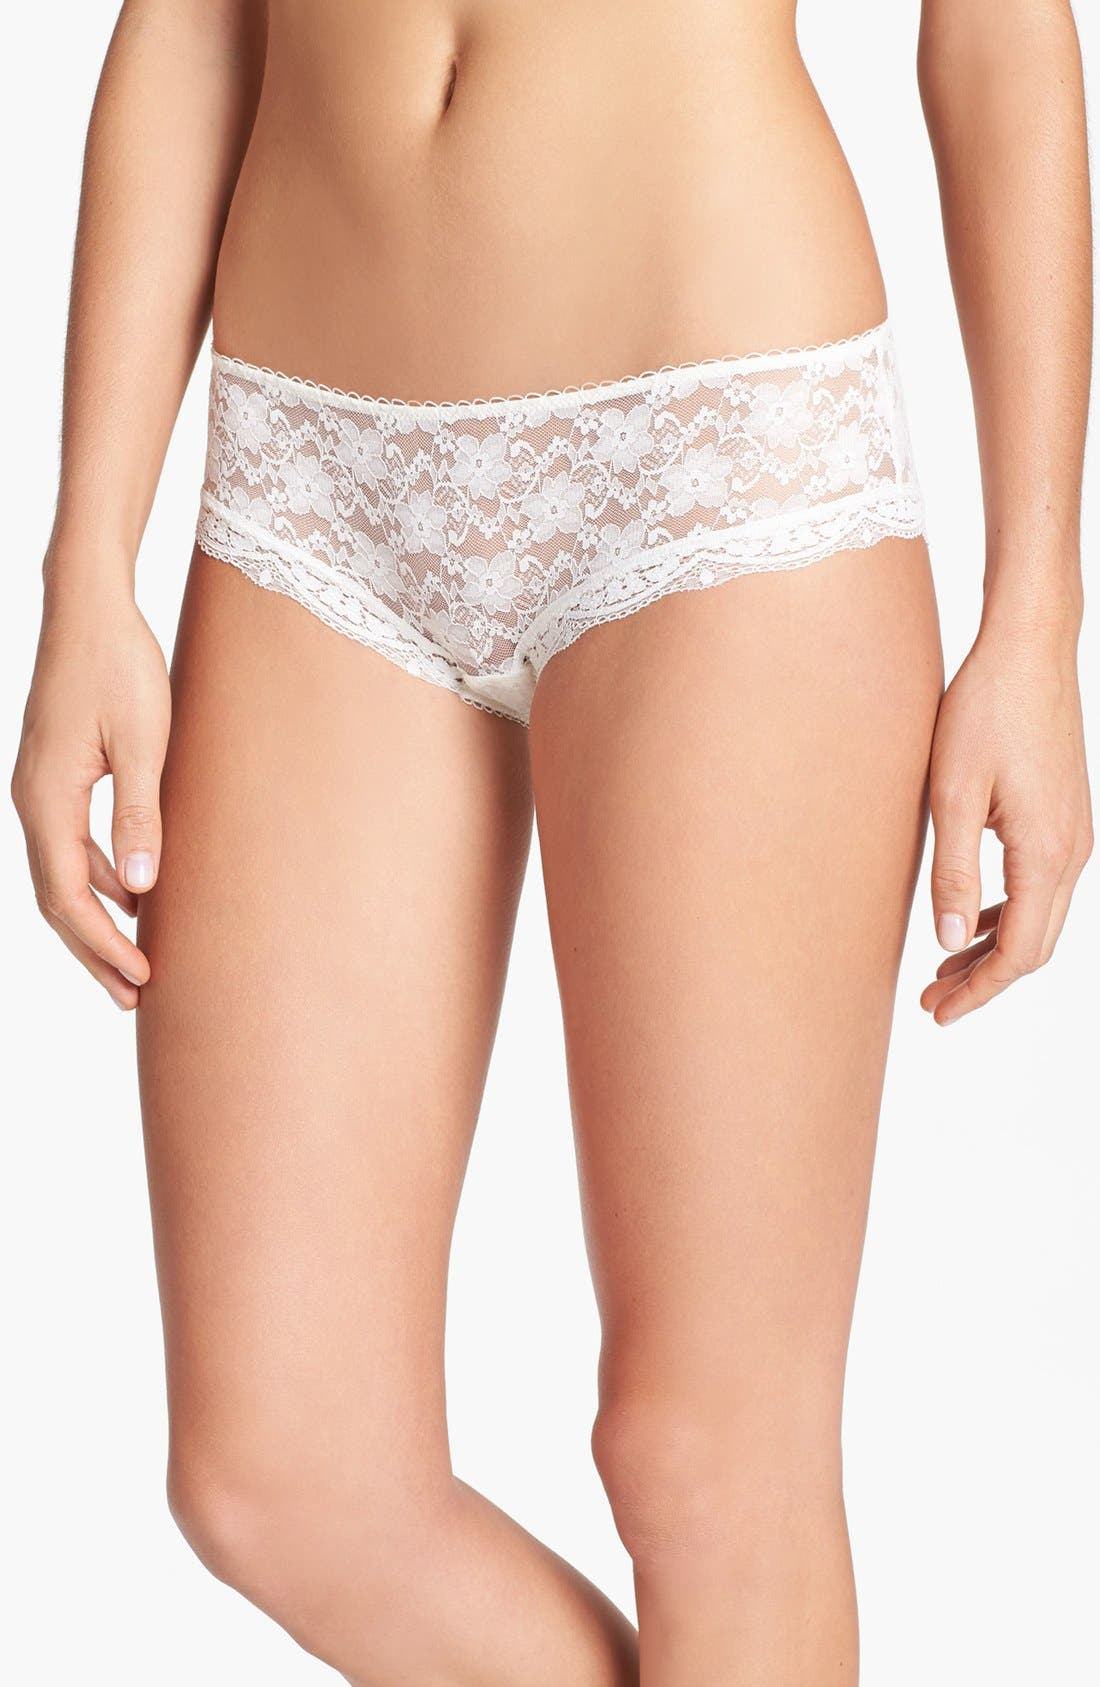 Alternate Image 1 Selected - Free People Lace Hipster Briefs (3 for $33)